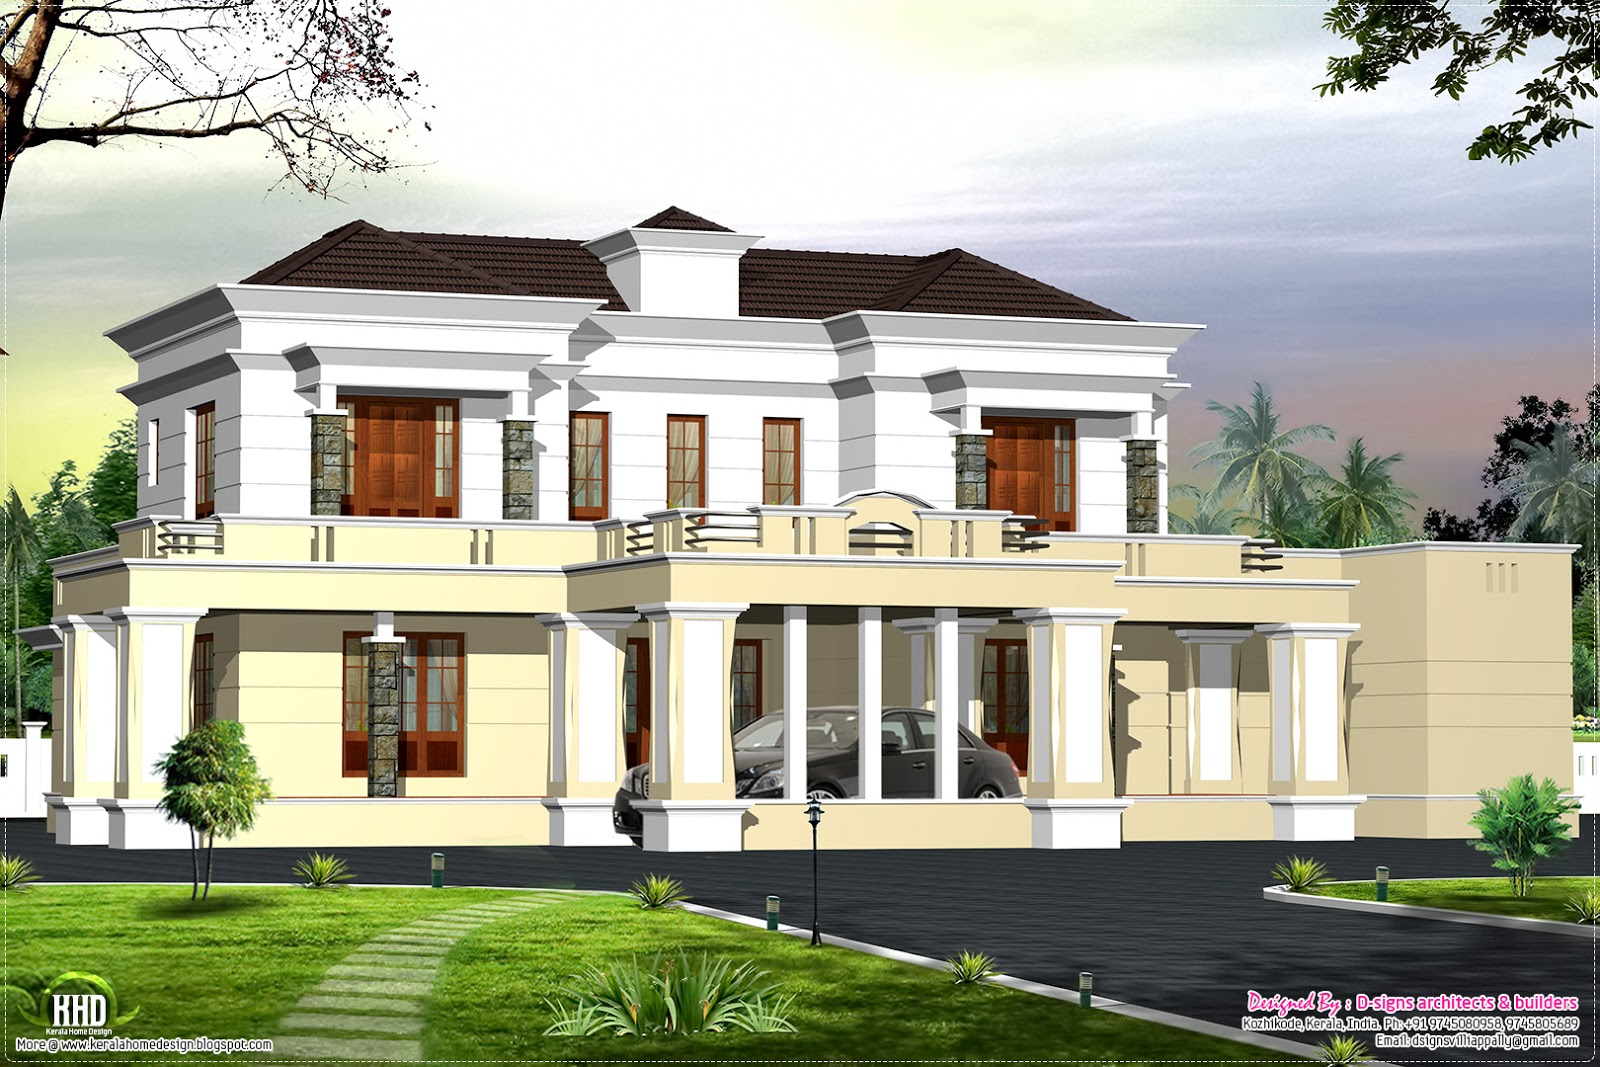 victorian style luxury home design kerala home design and floor plans. Black Bedroom Furniture Sets. Home Design Ideas